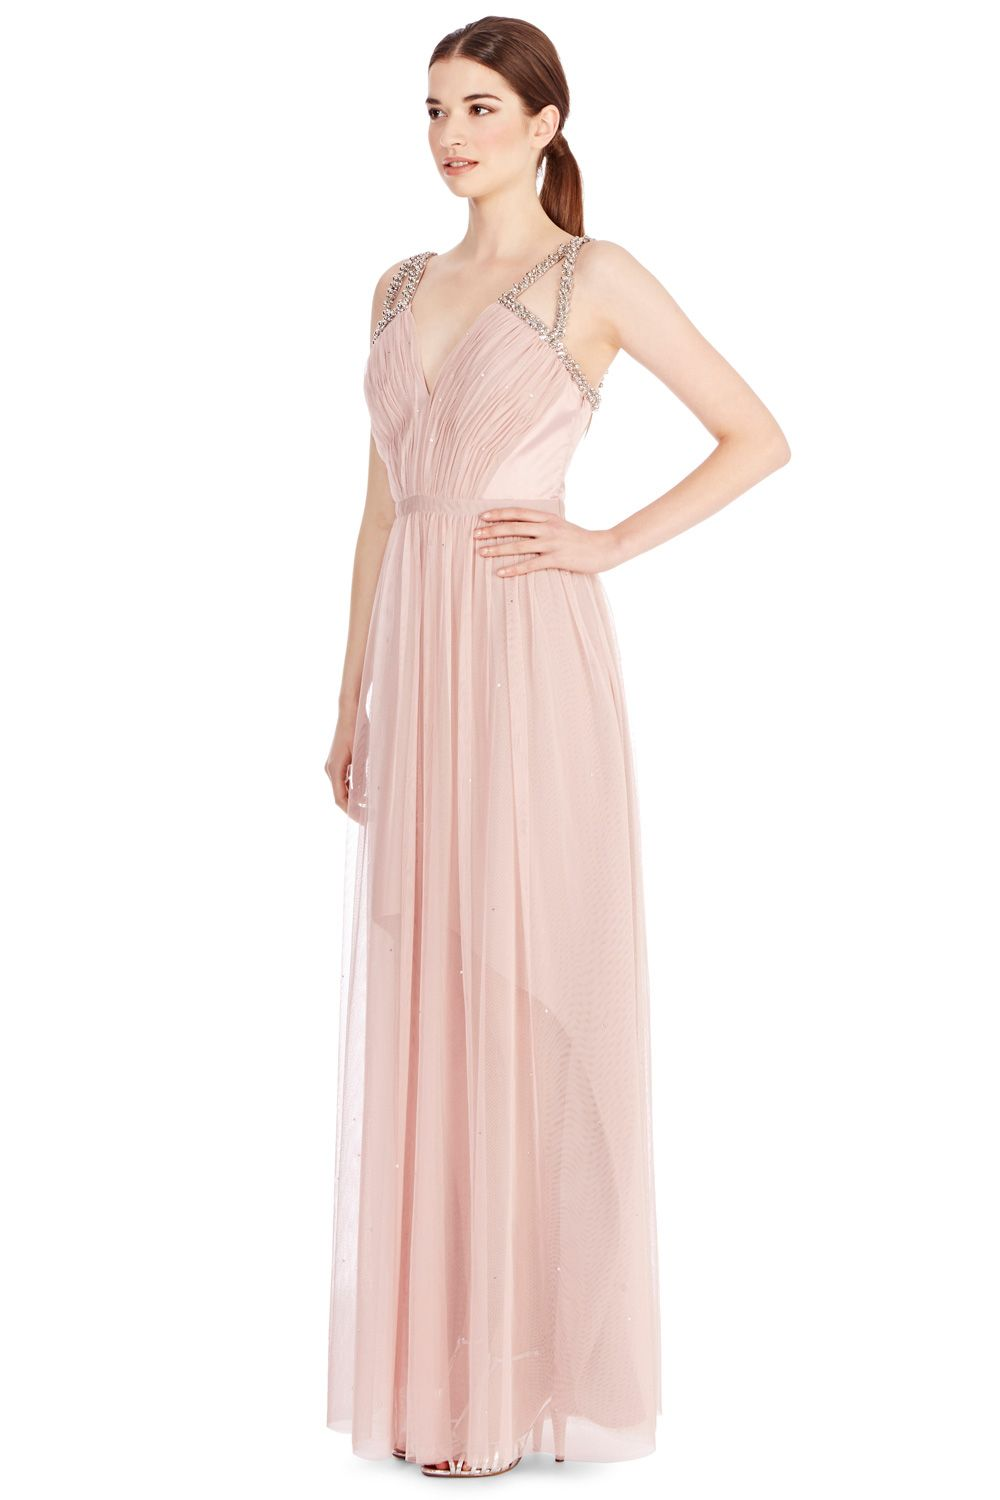 Starlight maxi dress